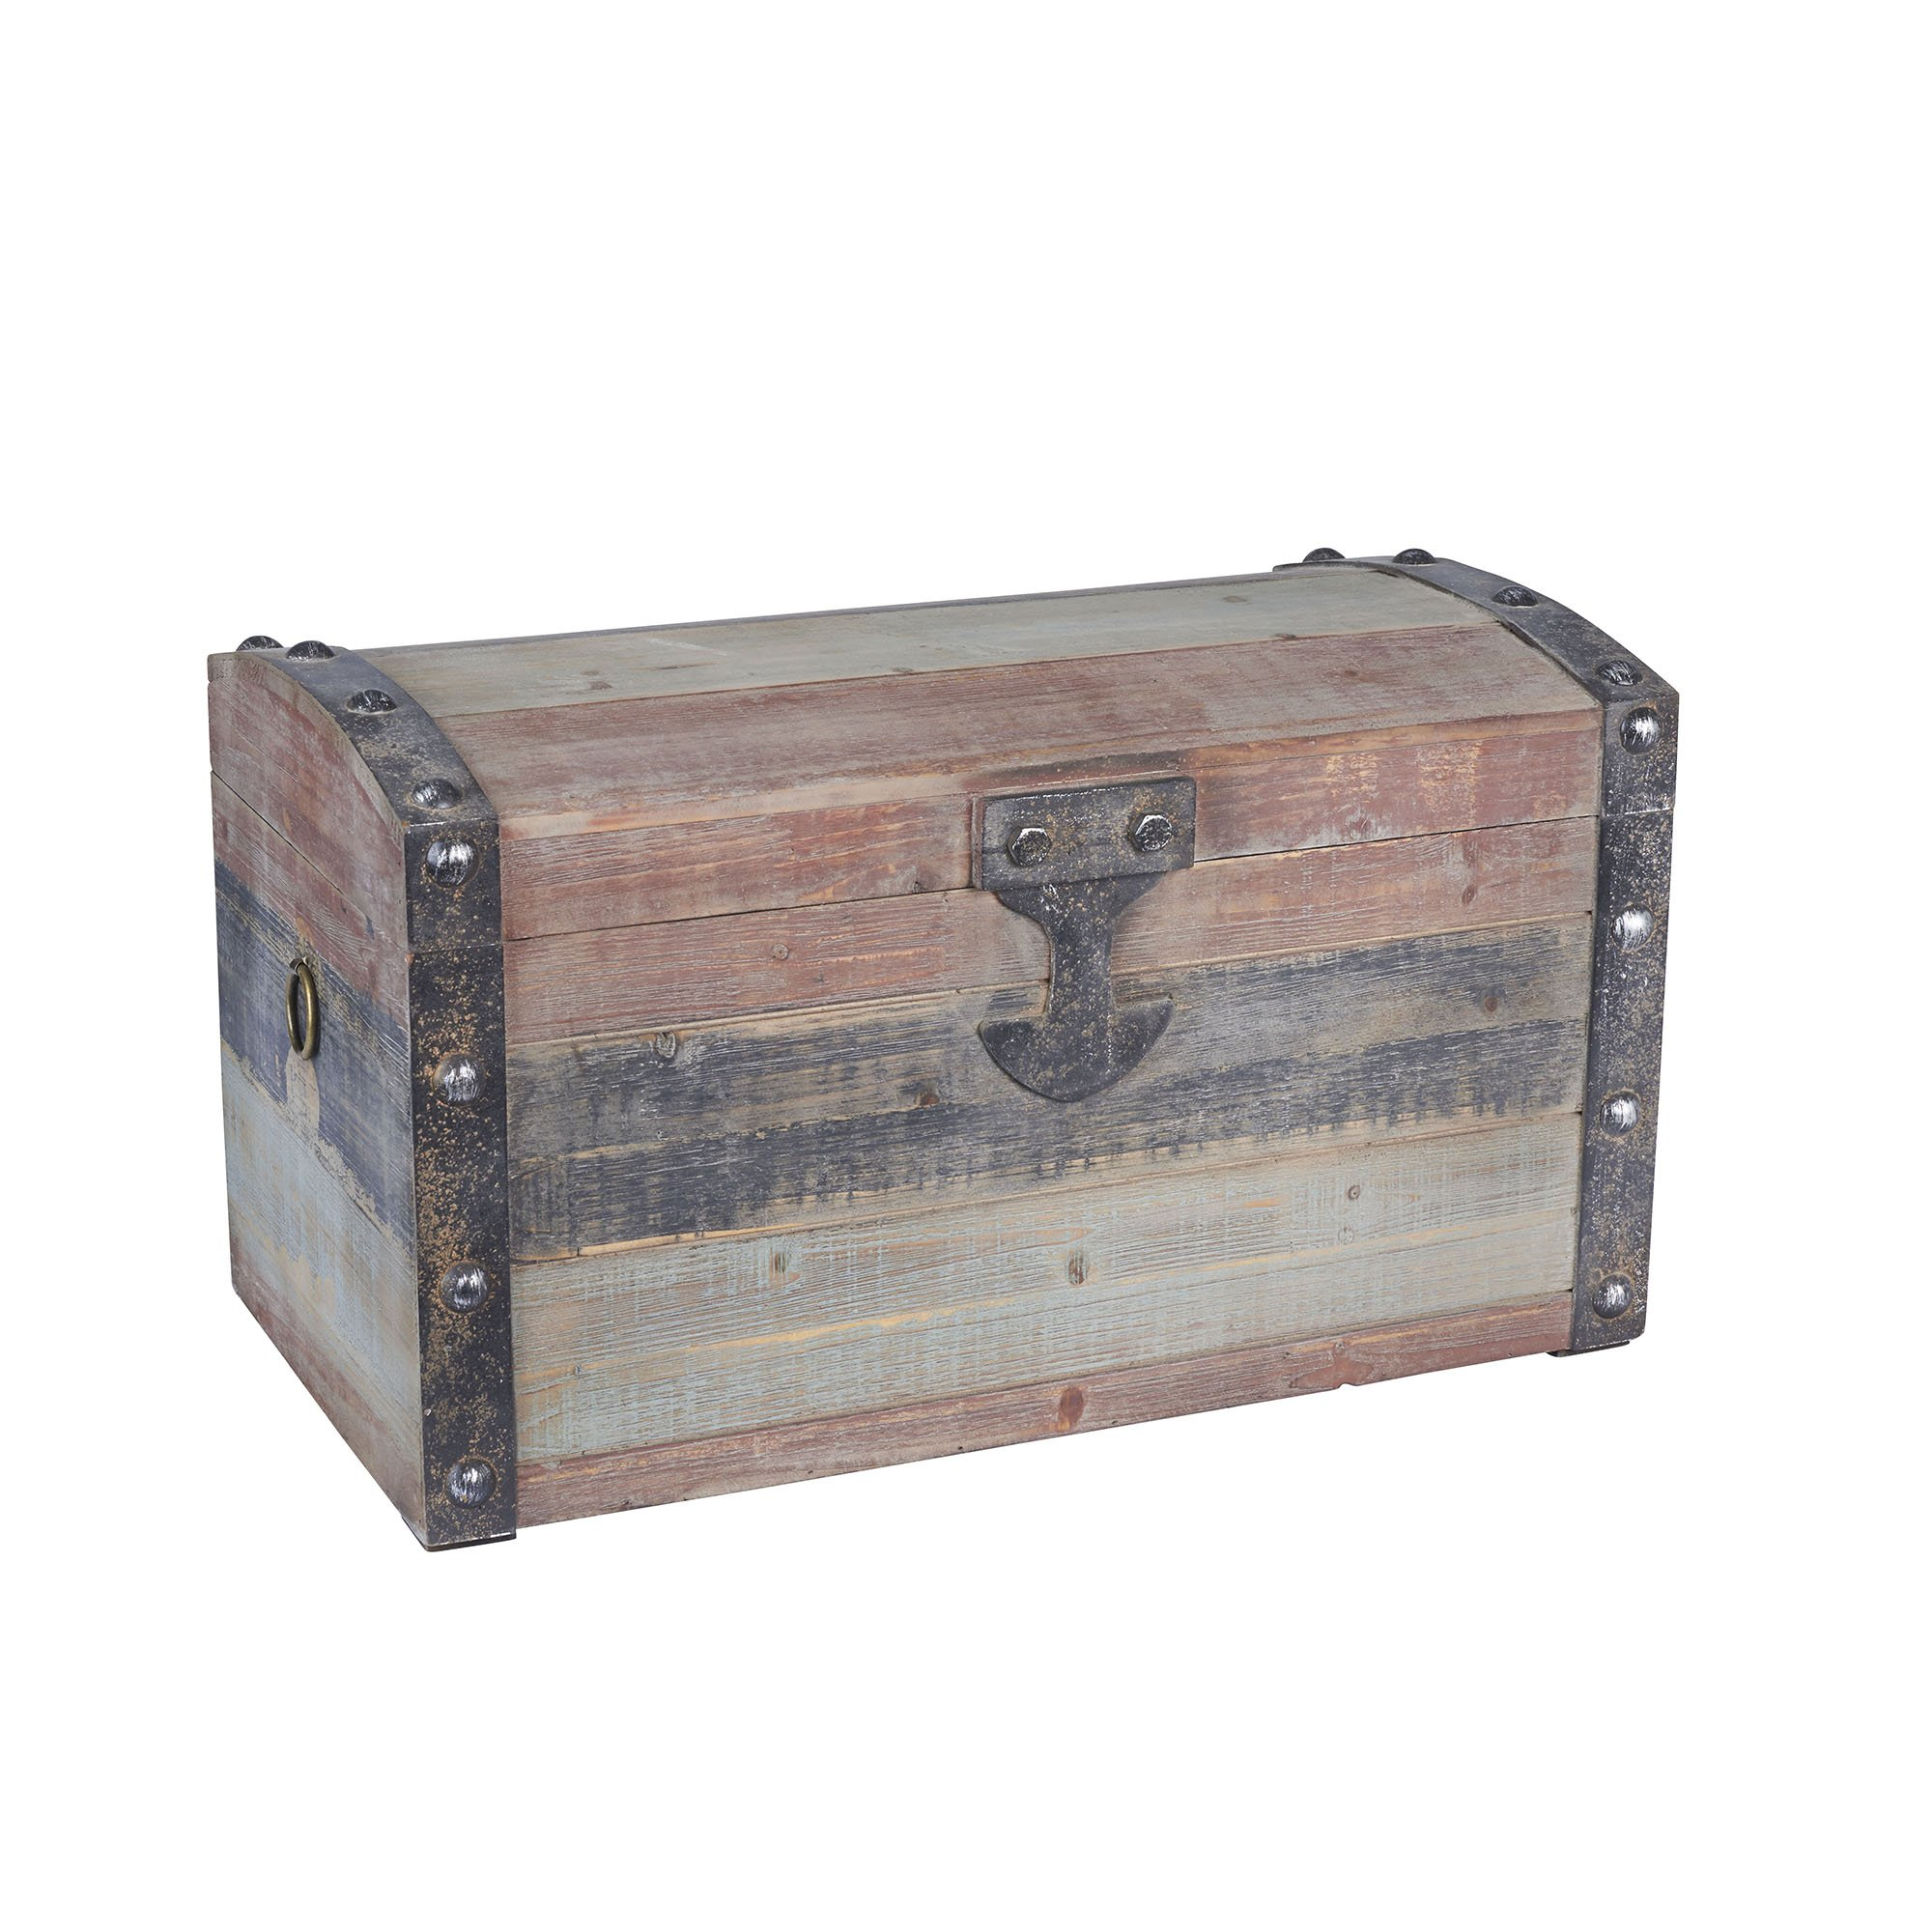 Household Essentials Stripped Weathered Wooden Storage Trunk, Small